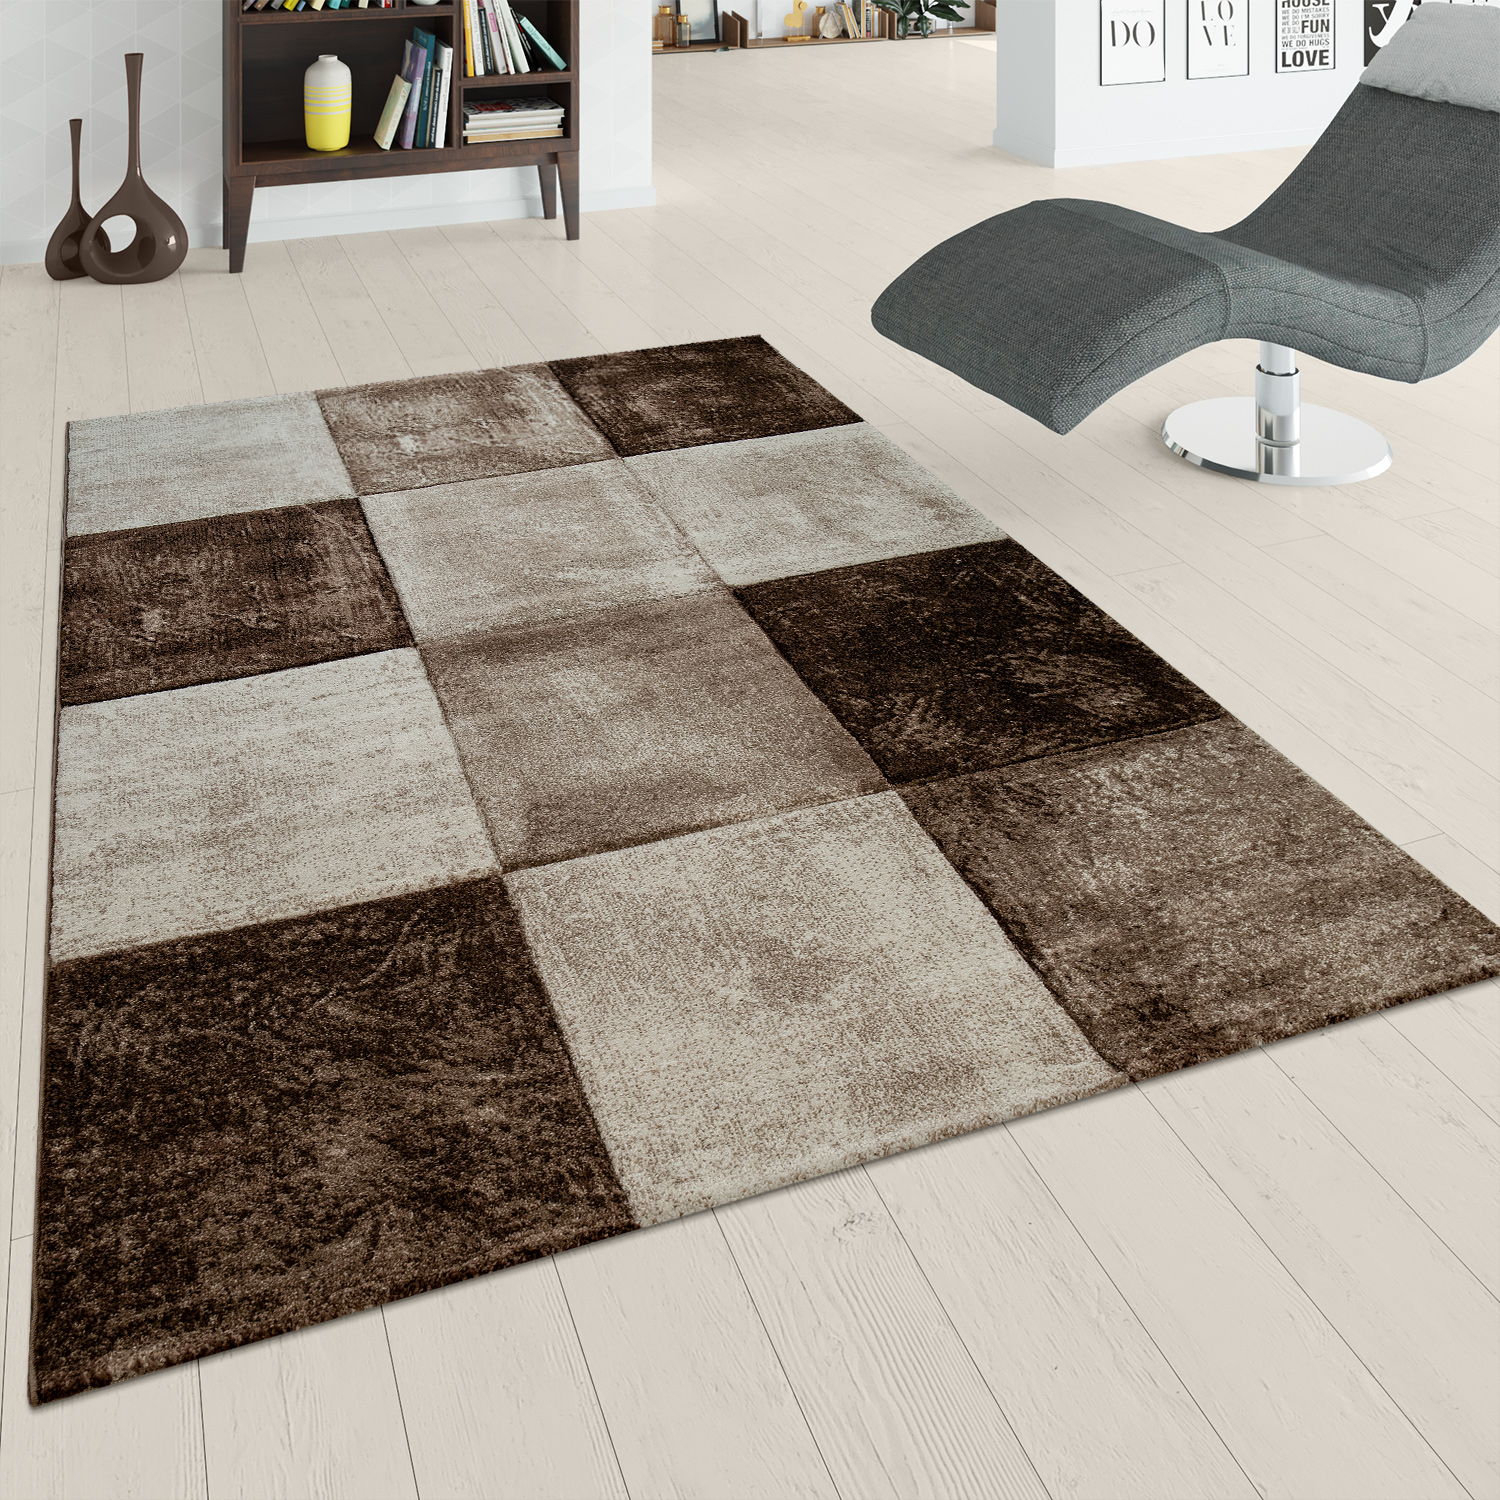 Tapis À Poils Ras Design Carreaux Marron